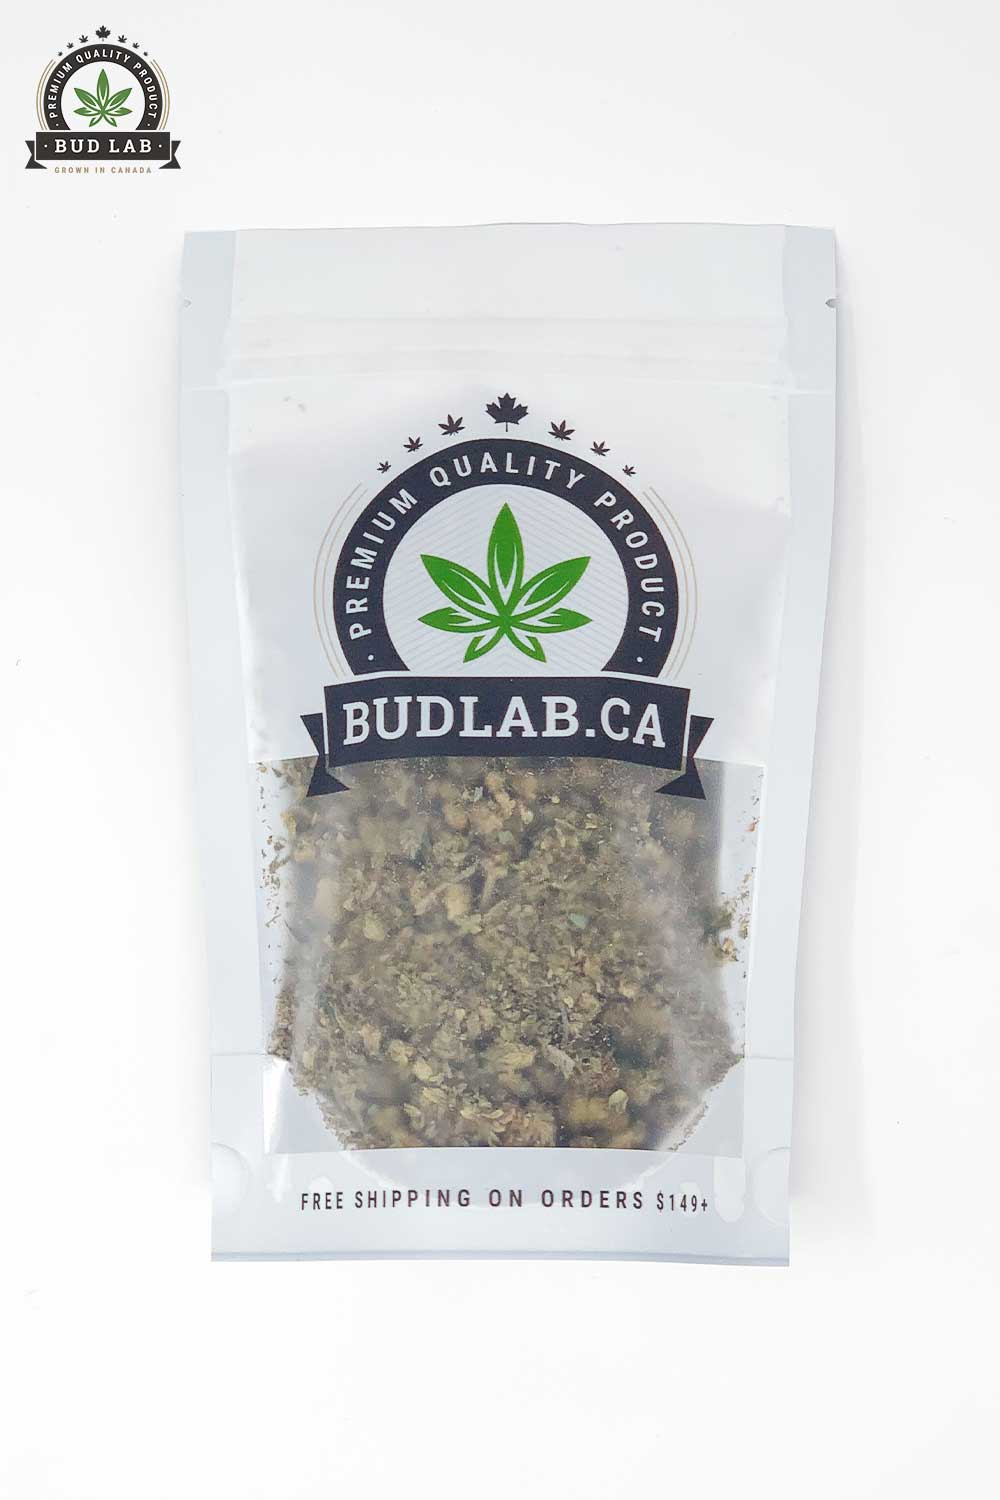 Bud Lab Shake and Trim Bag Package